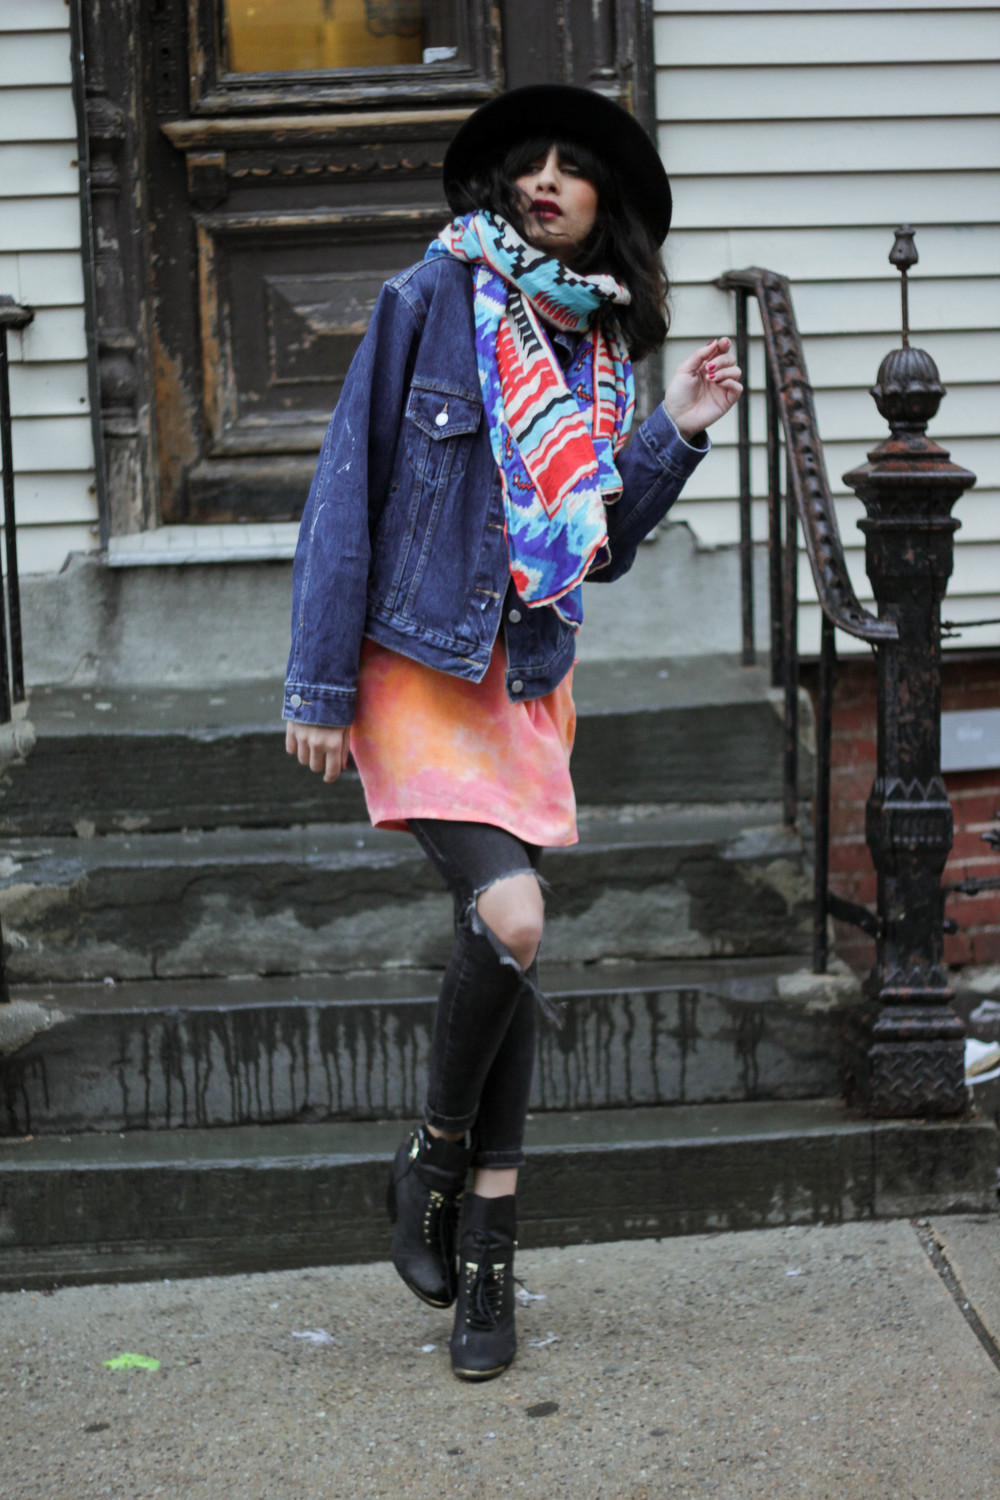 Gypsy 05 dress Theordora & Callum scarf